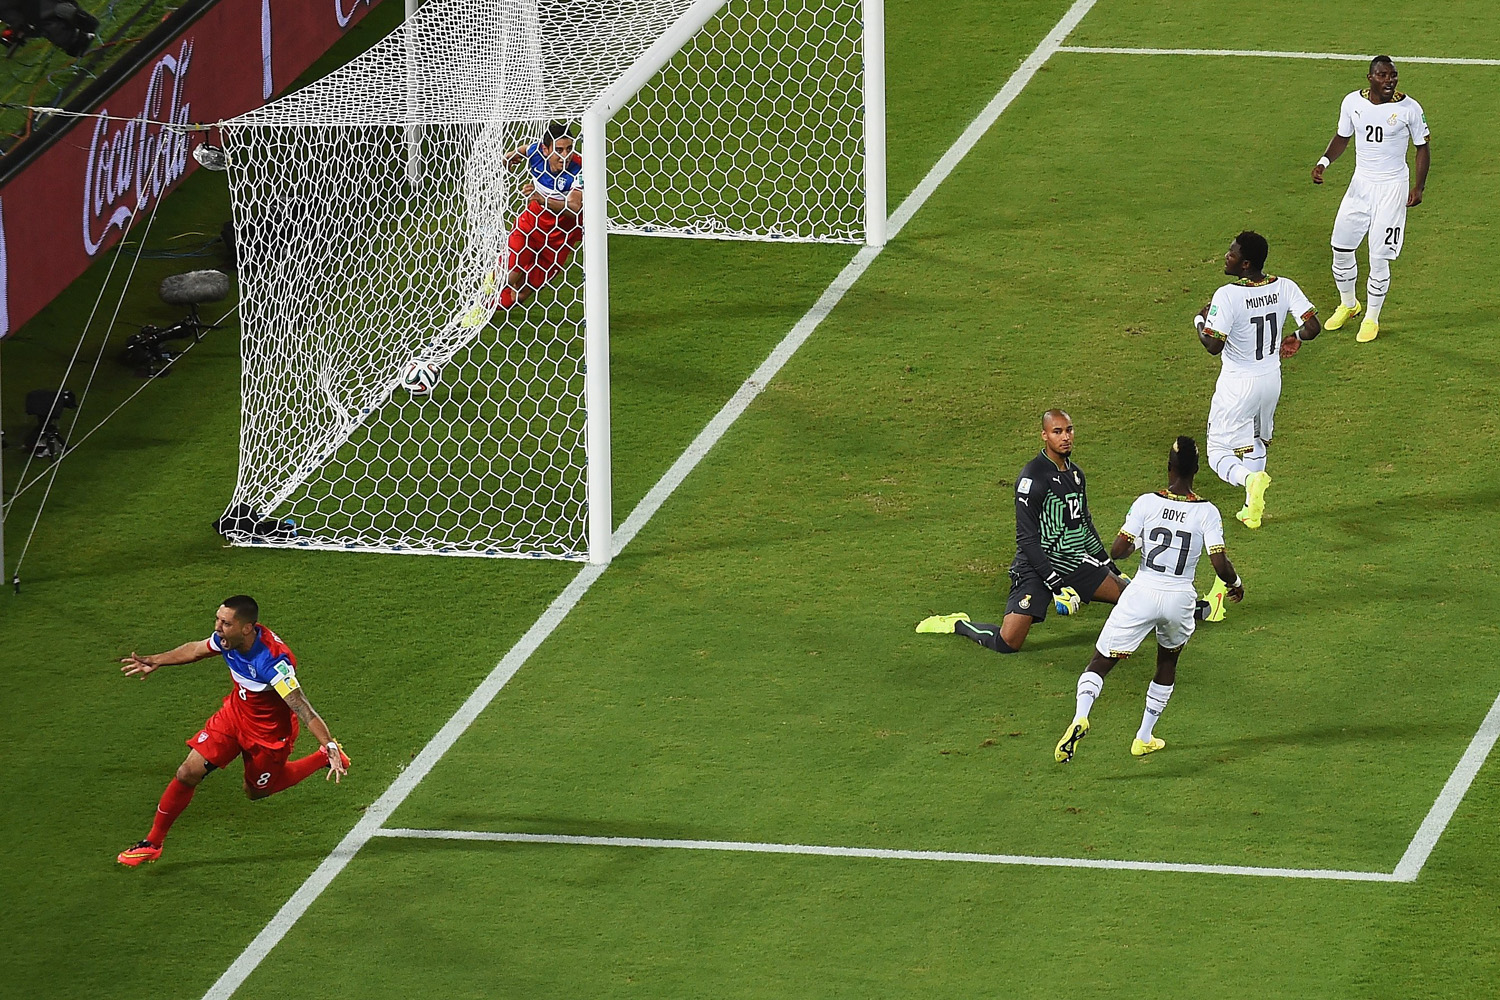 June 16, 2014. Clint Dempsey of the United States reacts after scoring his team's first goal past goalkeeper Adam Kwarasey of Ghana during the 2014 FIFA World Cup Brazil Group G match between Ghana and the United States at Estadio das Dunas in Natal, Brazil.